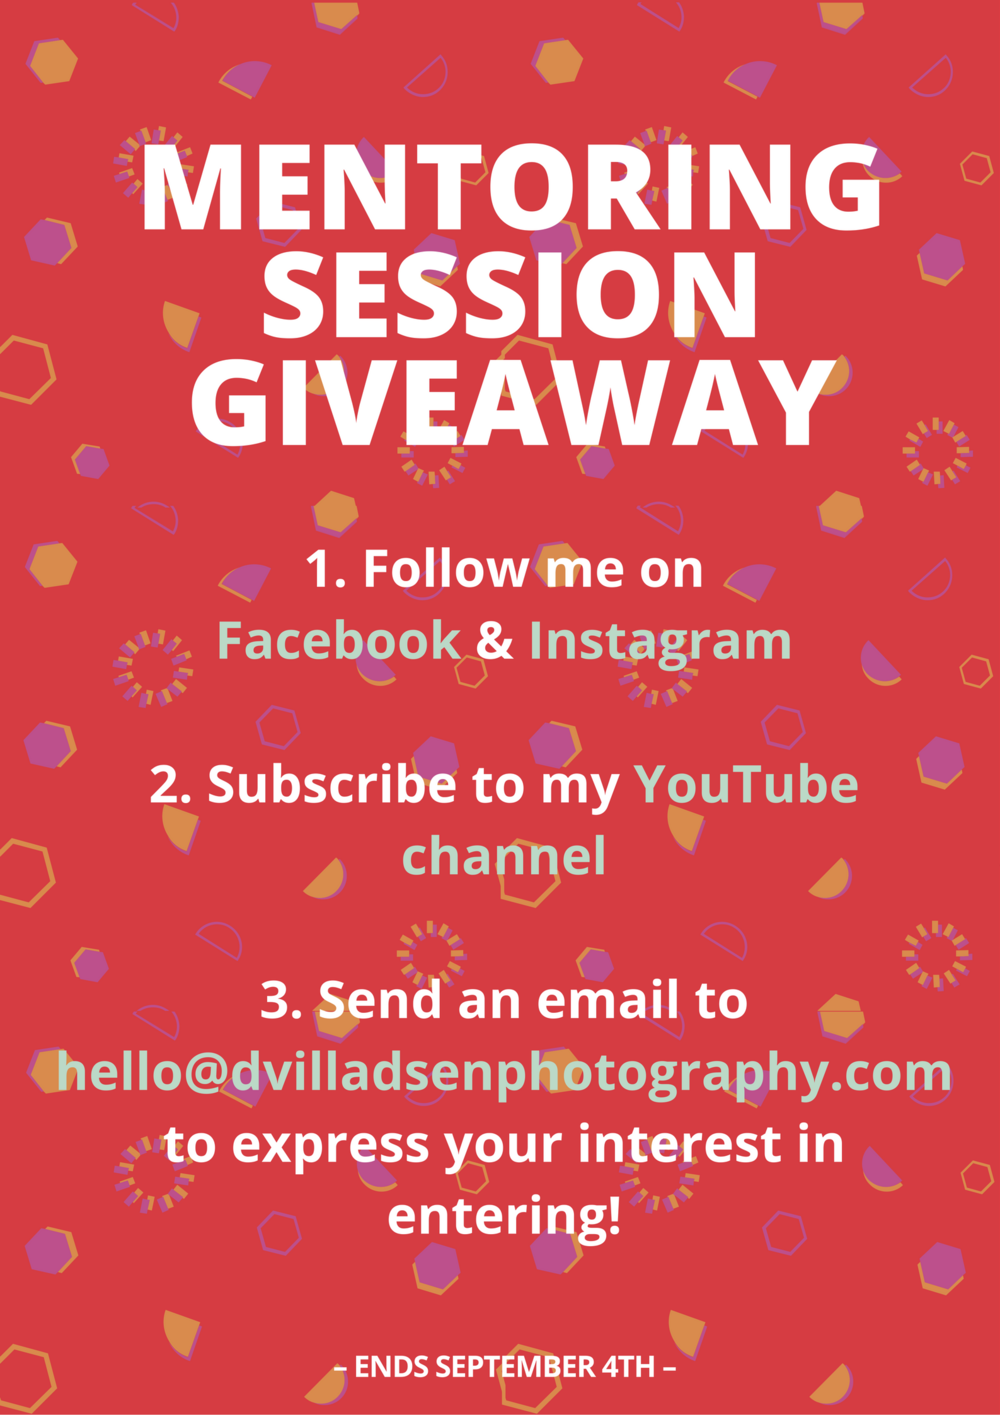 MENTORING-SESSION-GIVEAWAY.png